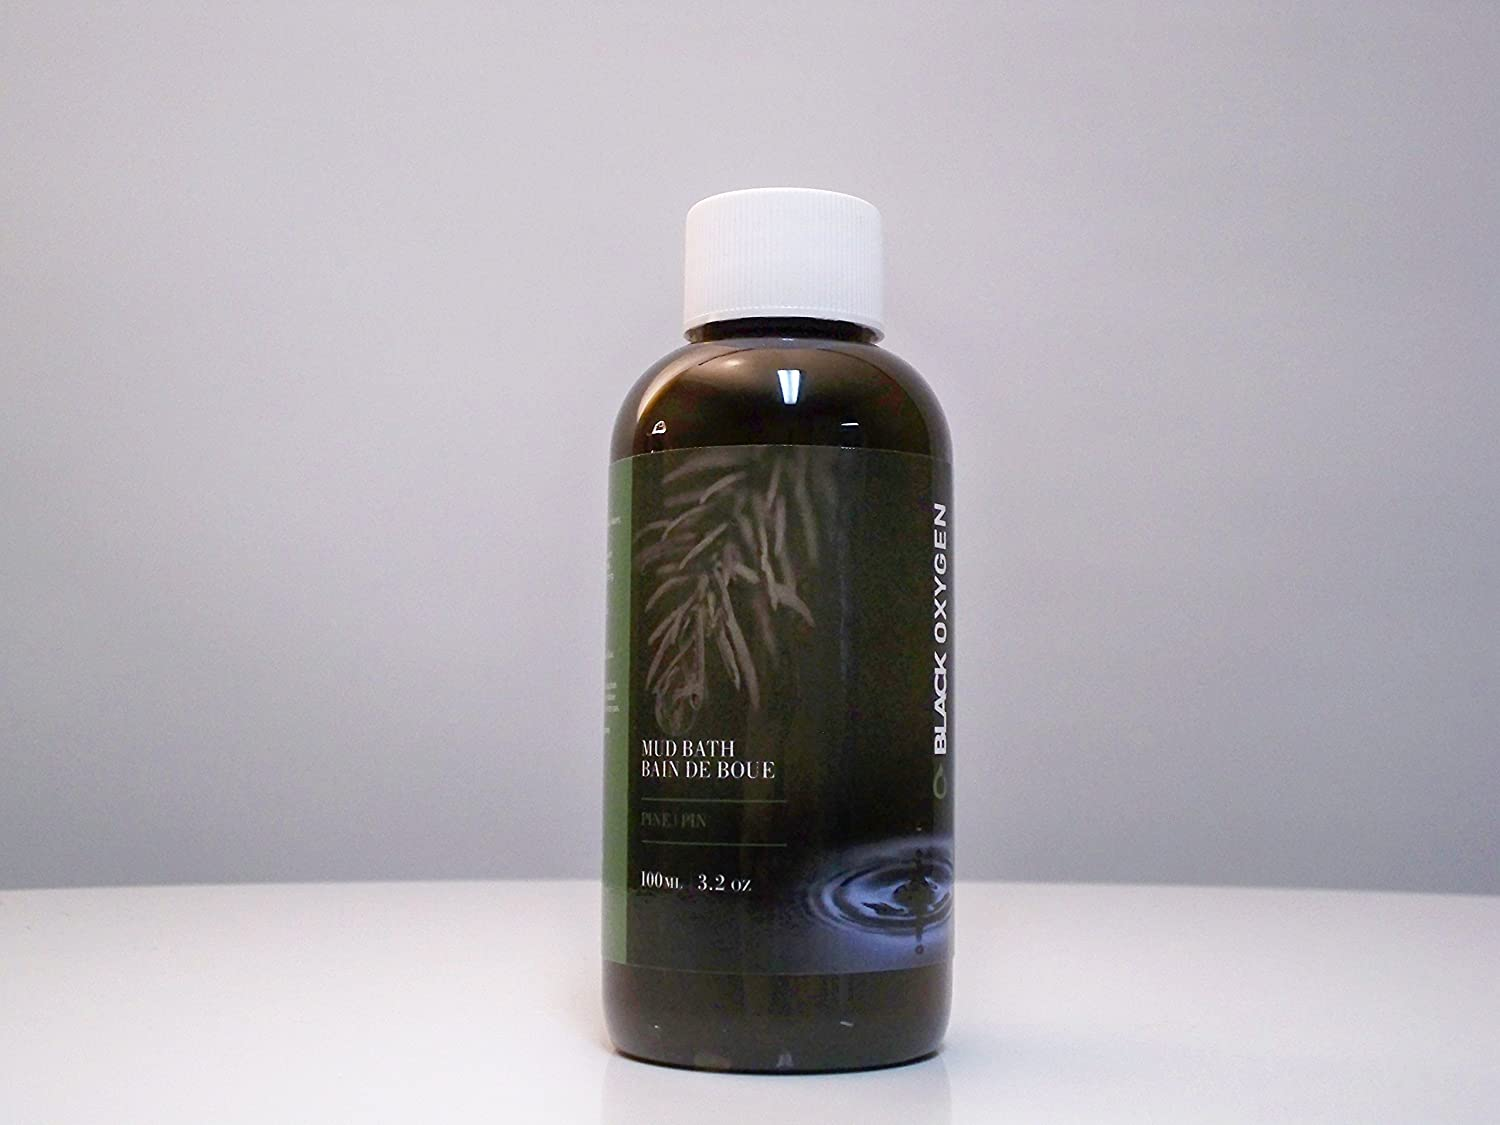 Mud Bath - Pine 100ml BlackOxygen Organics